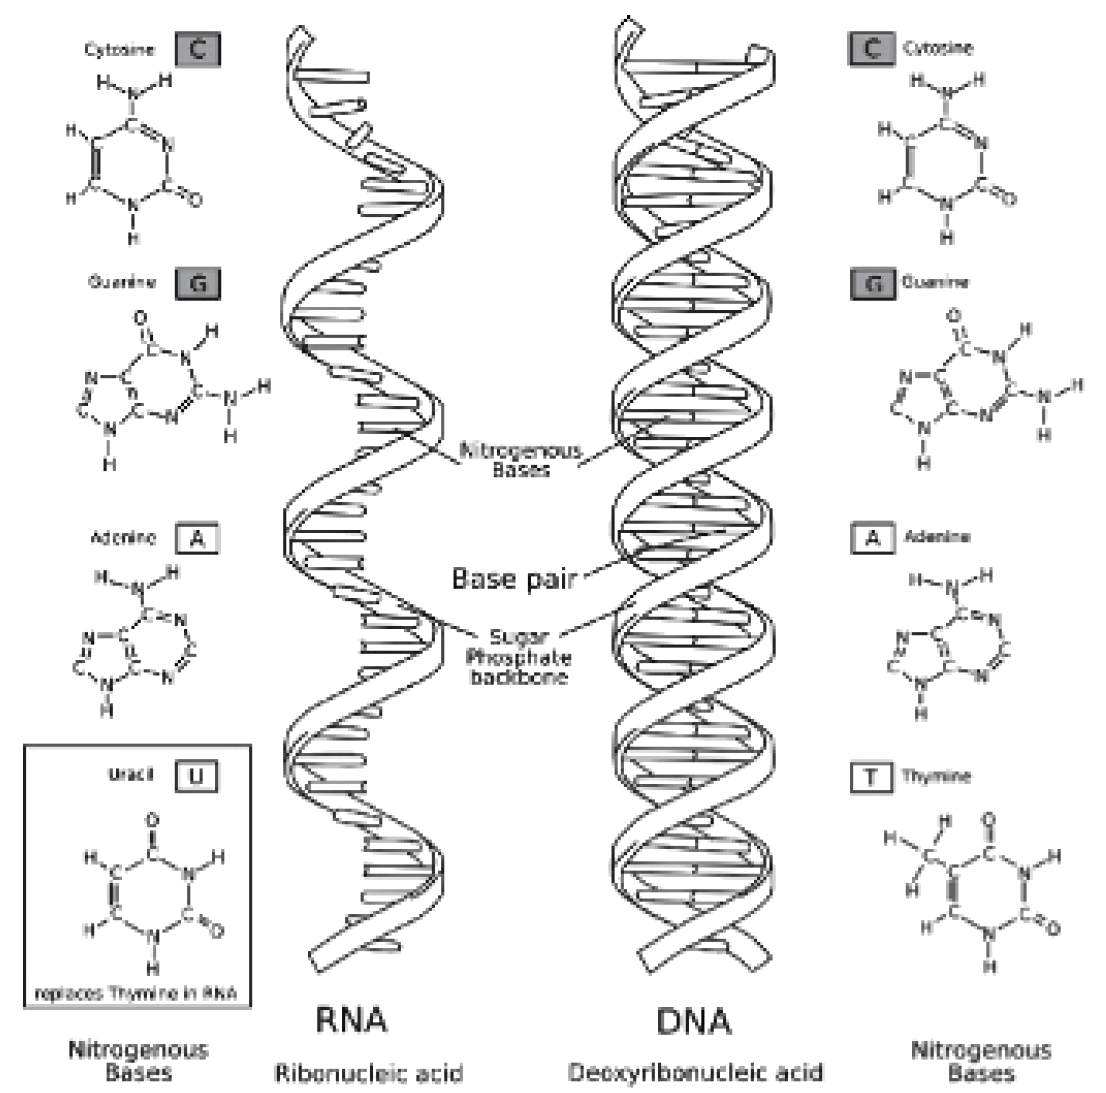 Worksheet Dna And Rna Worksheet Grass Fedjp Worksheet Study Site